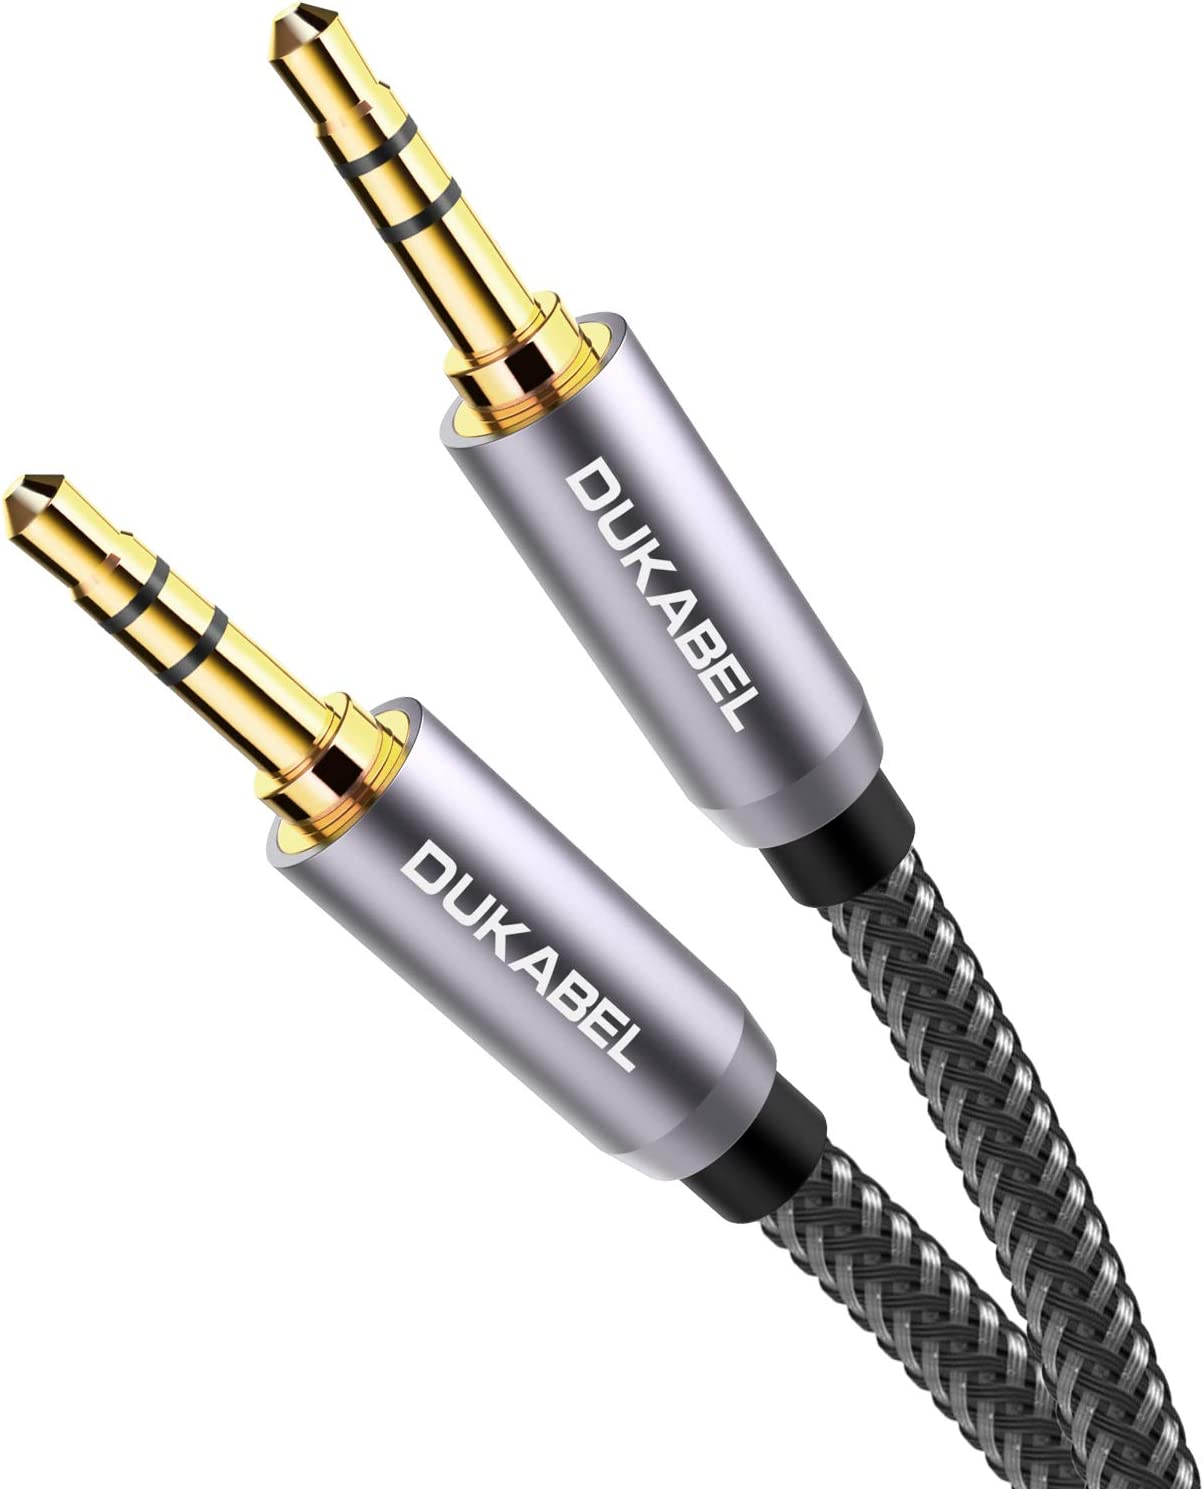 DuKabel Top Series 3.5mm AUX Cable Lossless Audio Gold-Plated Auxiliary Audio Cable Nylon Braided Male to Male Stereo Audio AUX Cord Car Headphones Phones Speakers Home Stereos (4 Feet (1.2 Meters))